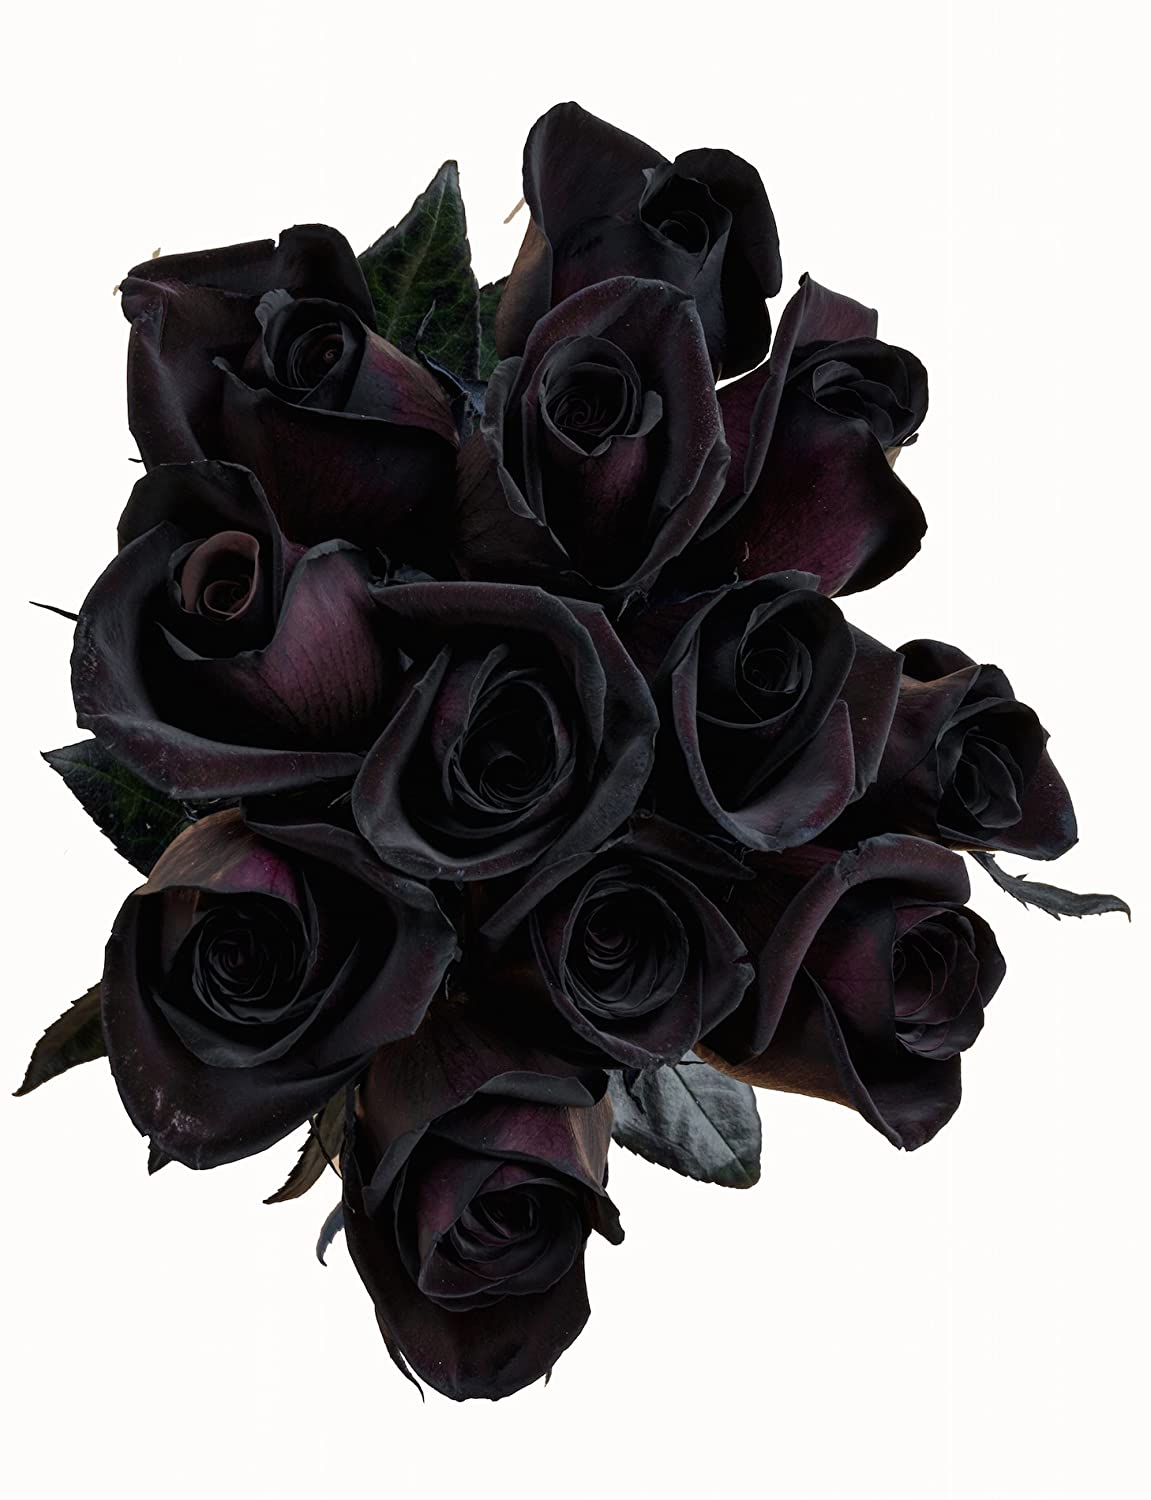 Amazon black roses bouquet by flower explosion real fresh amazon black roses bouquet by flower explosion real fresh tinted black roses 12 stems grocery gourmet food izmirmasajfo Choice Image